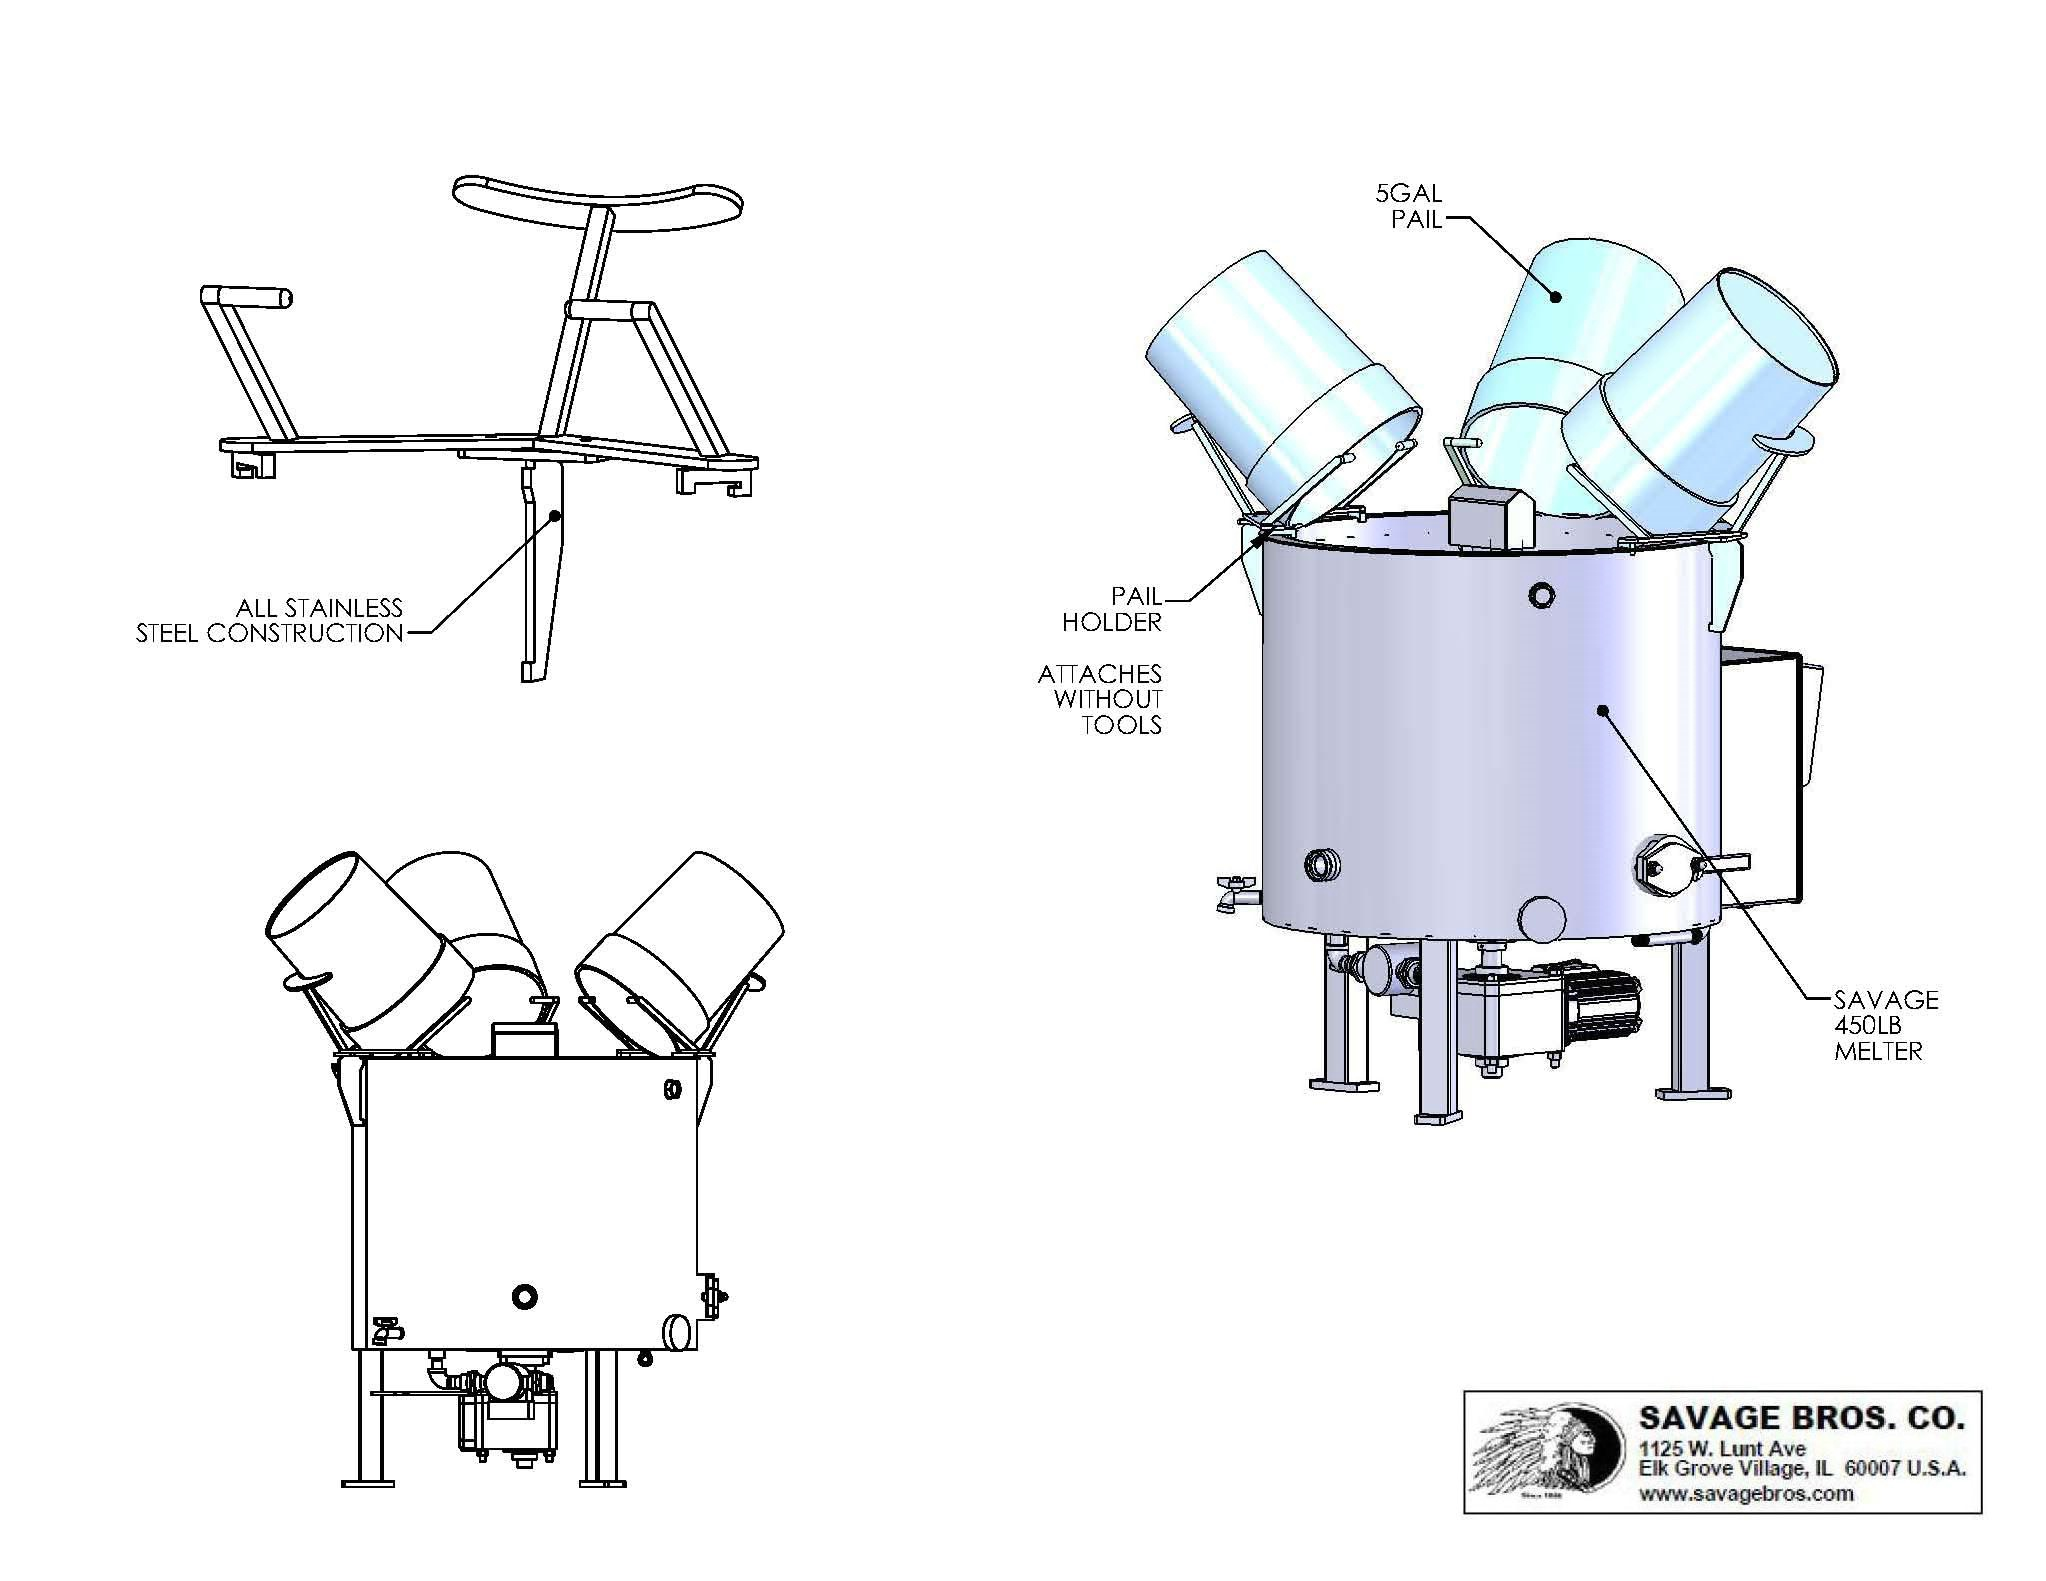 Baking Equipment Drawing Icing Melter With 5 Gallon